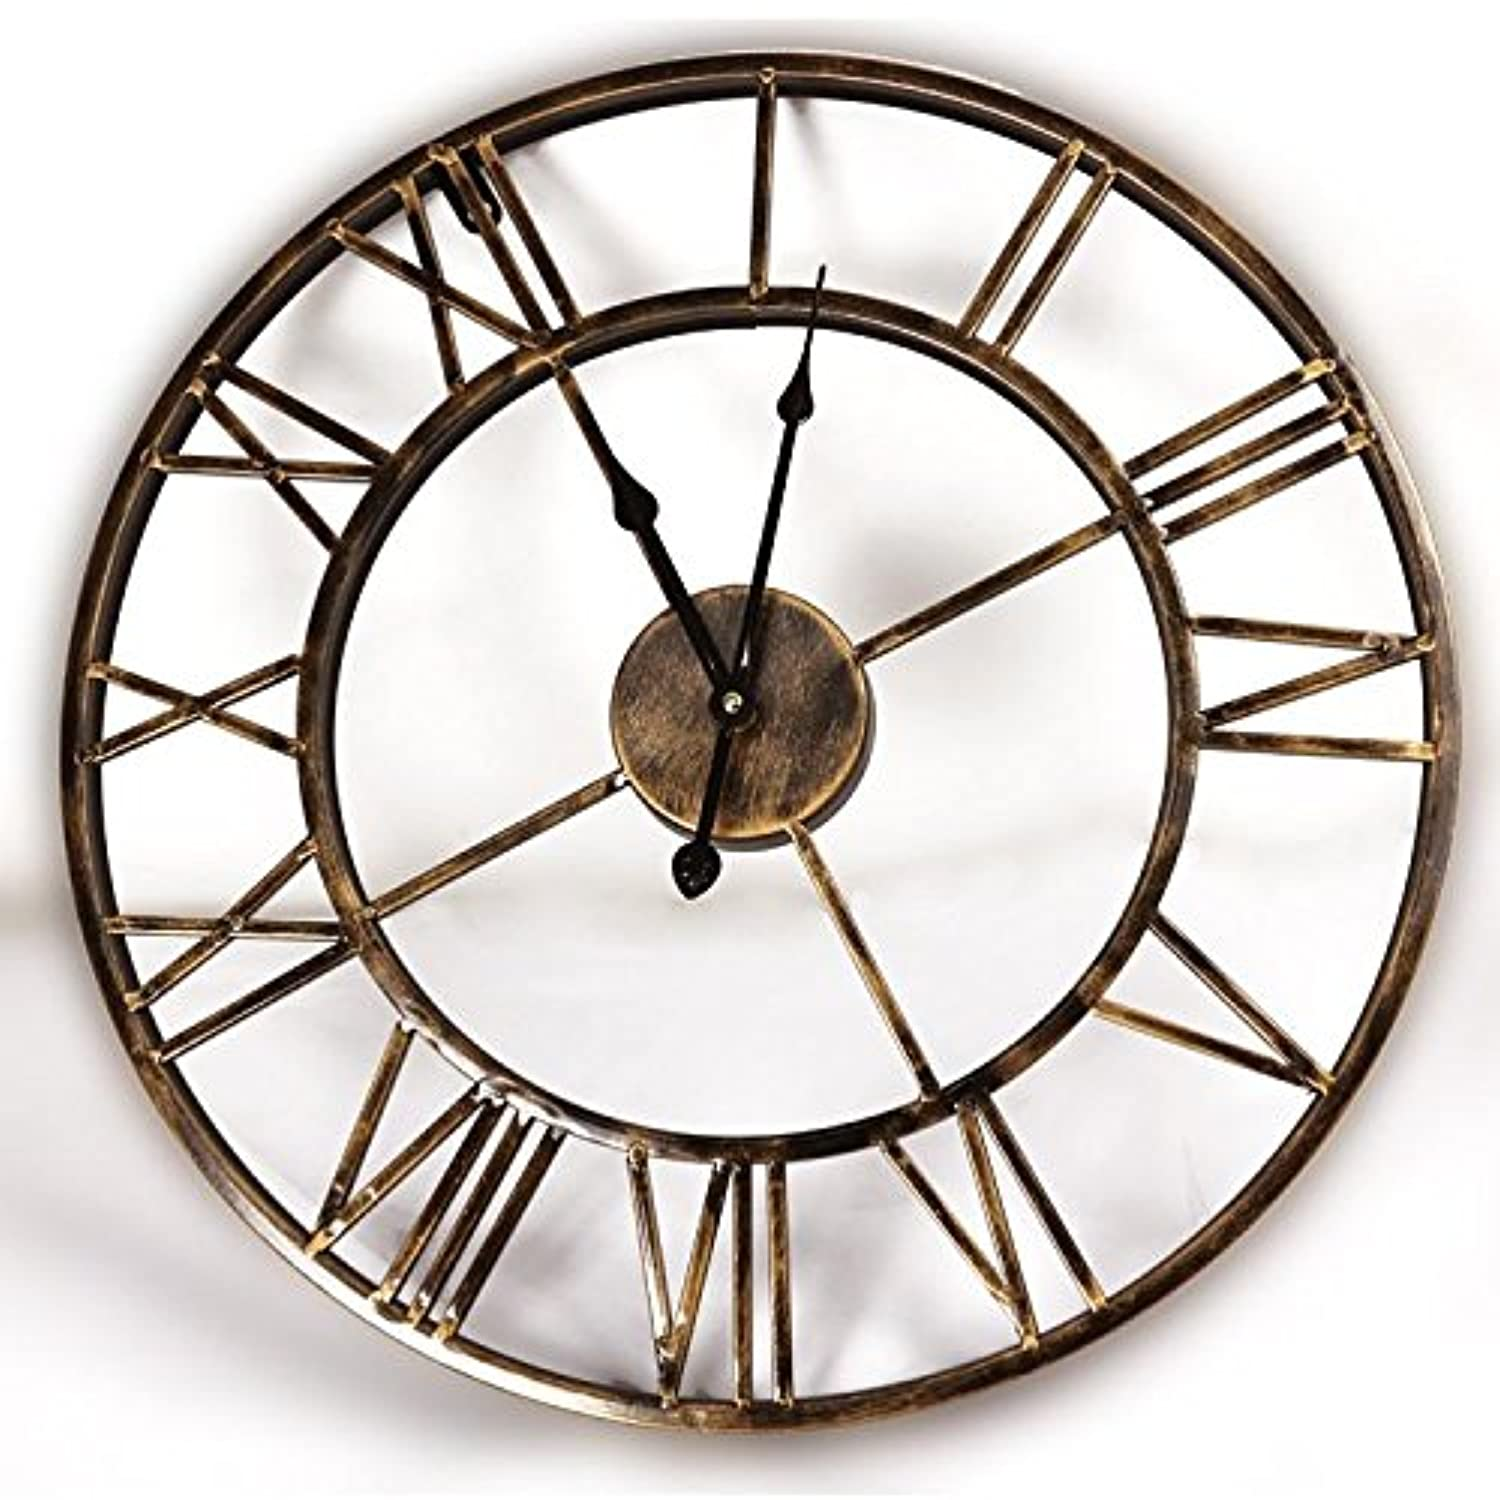 Jyg 20inches diy vintage 3d large wall clock wrought iron - Reloj pared vintage ...